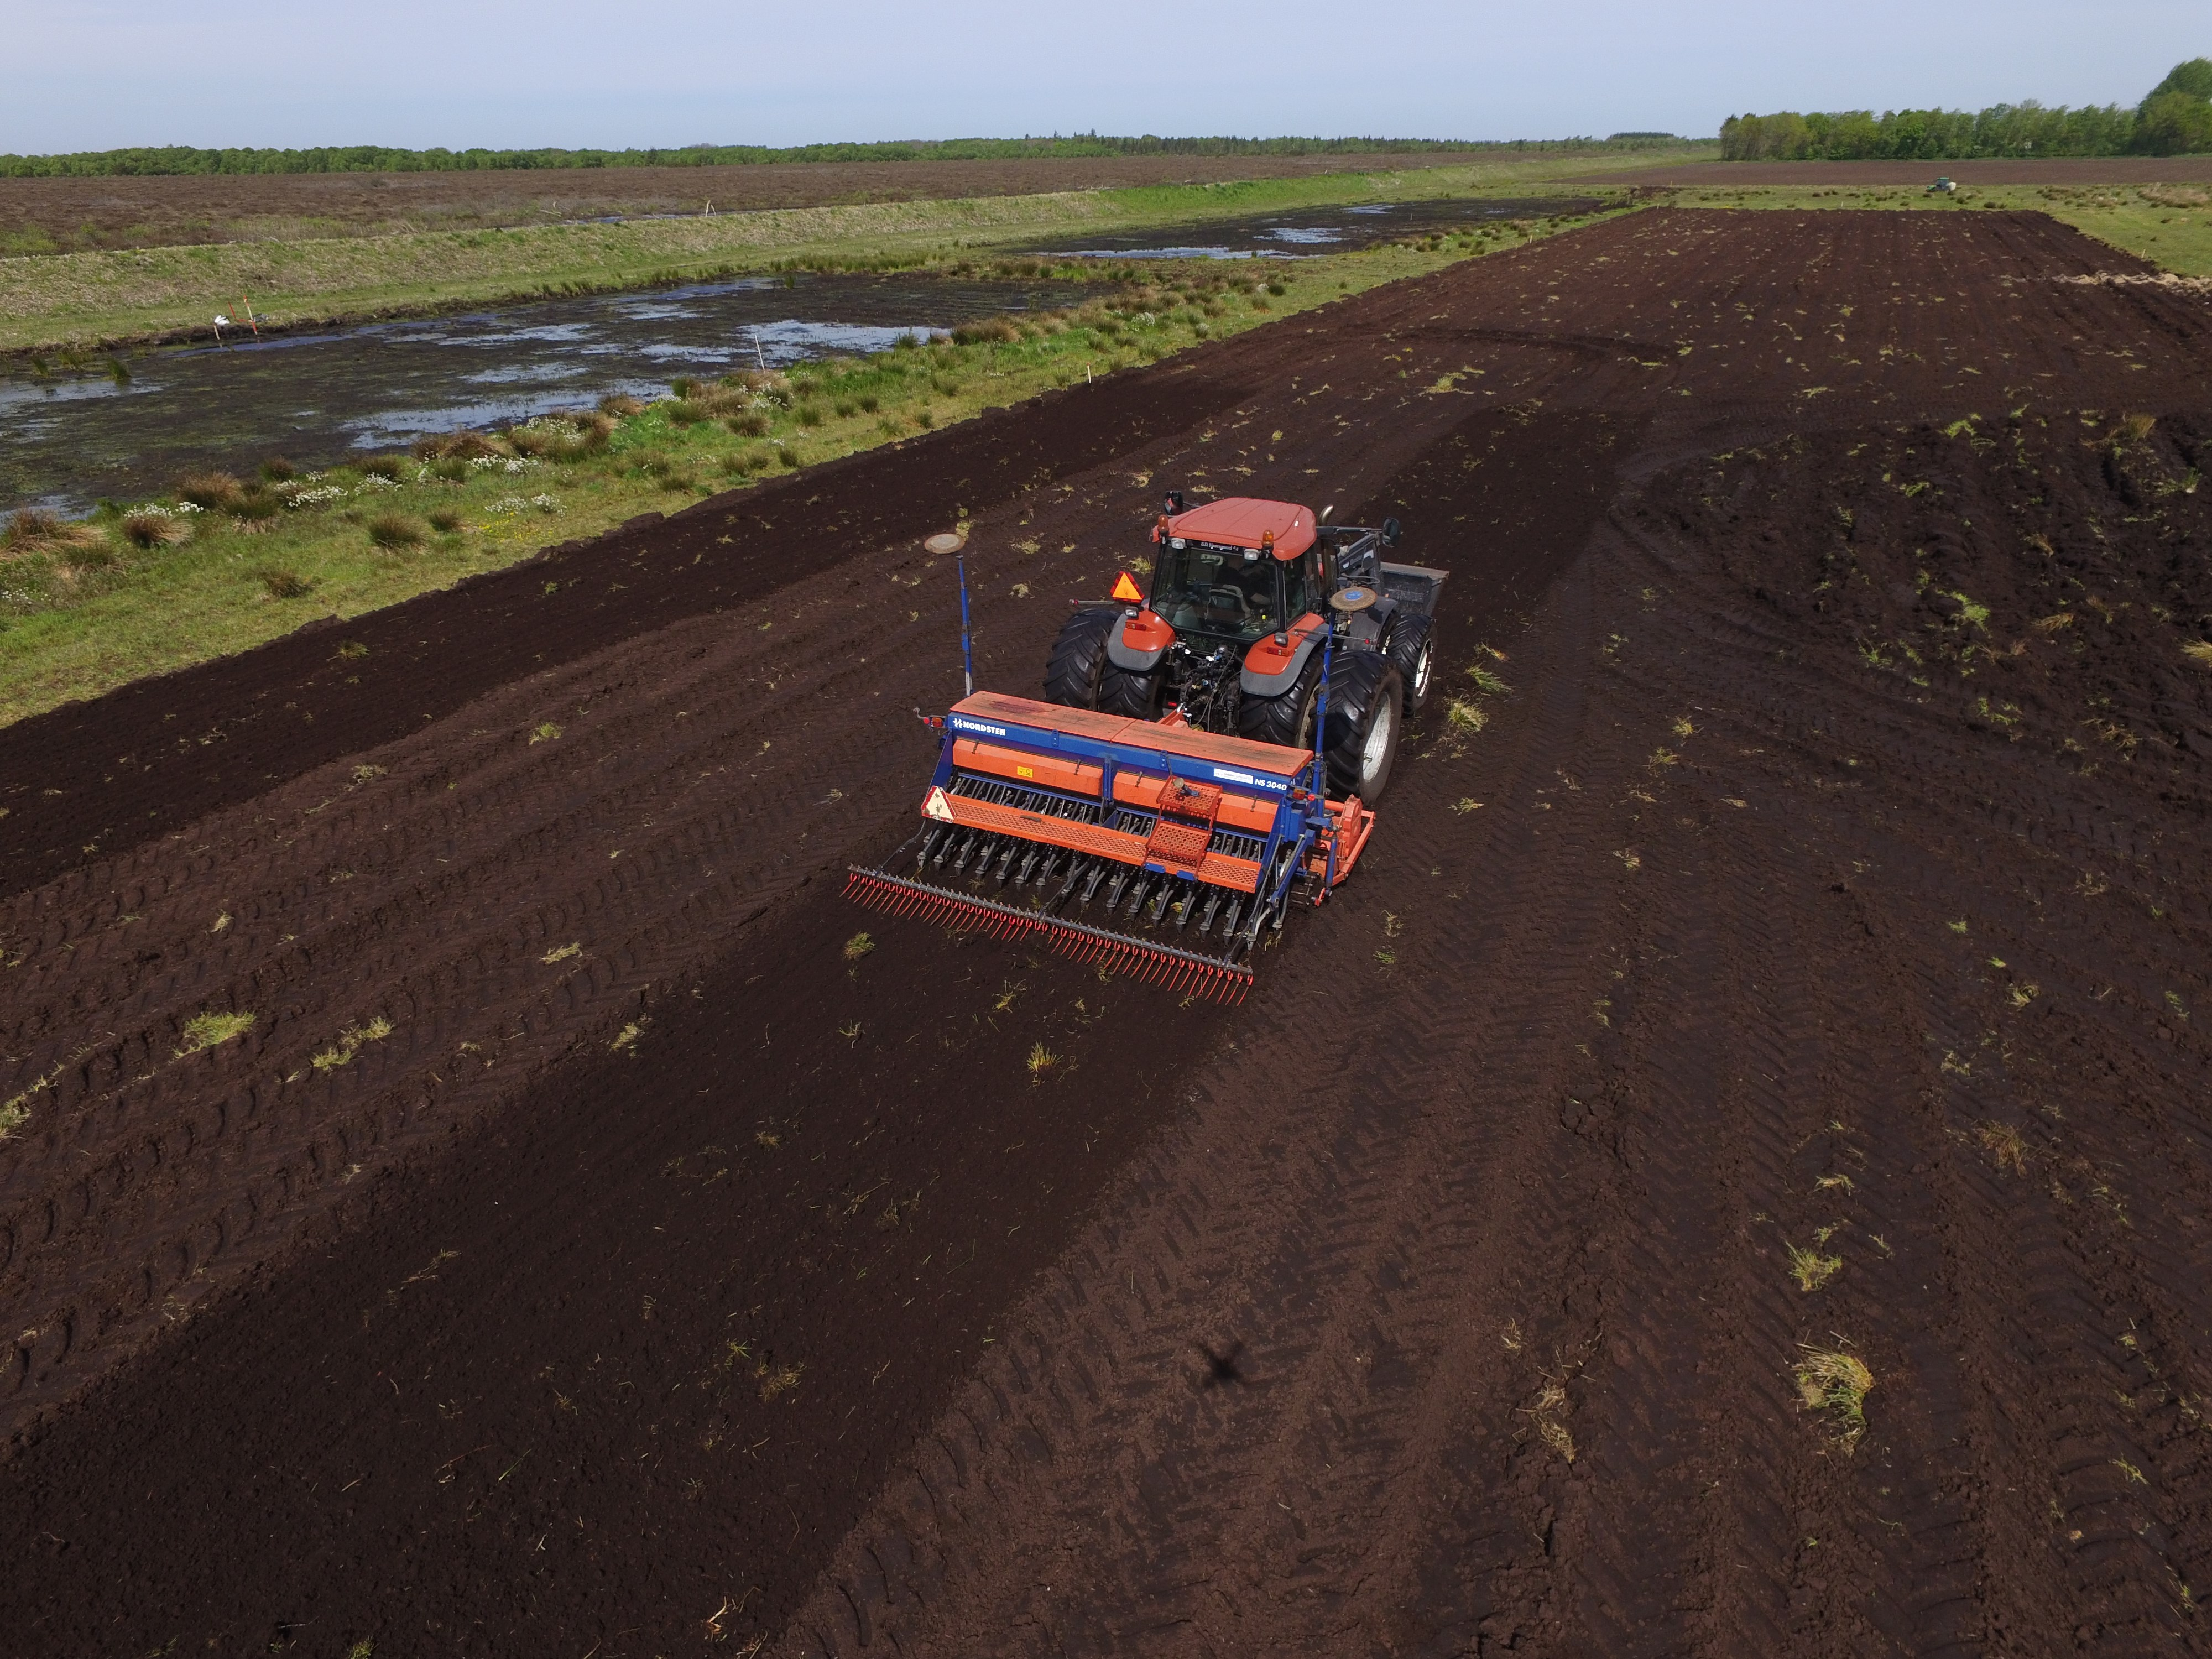 Machinery working to prepare the peat surface.